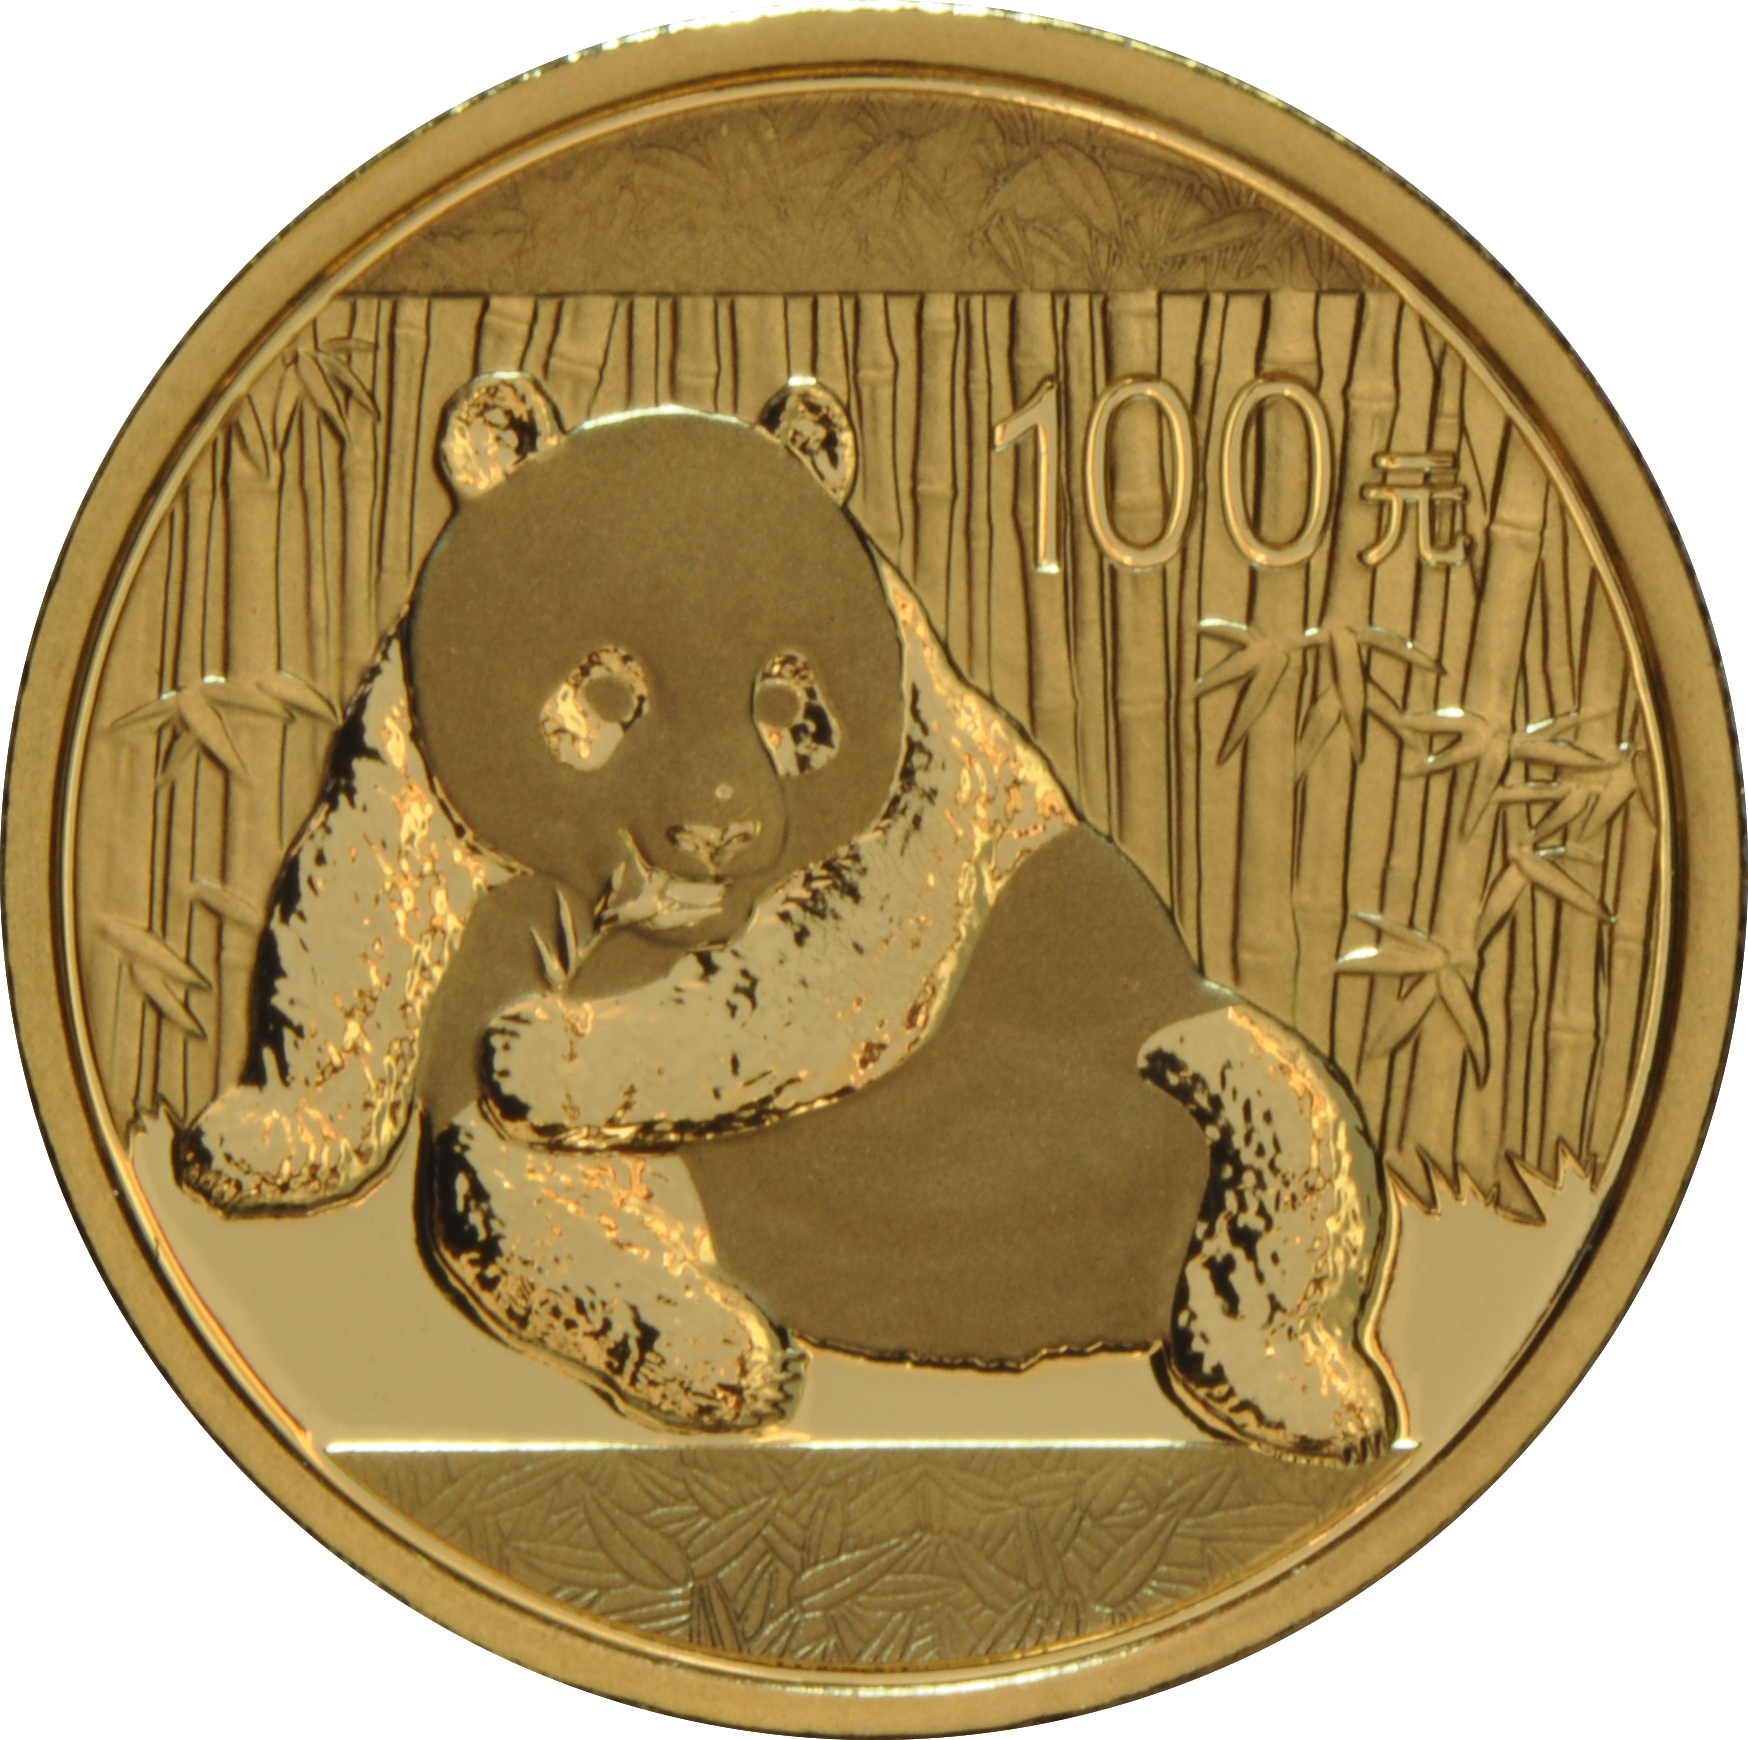 2015 1 4 oz gold chinese panda coin 299. Black Bedroom Furniture Sets. Home Design Ideas